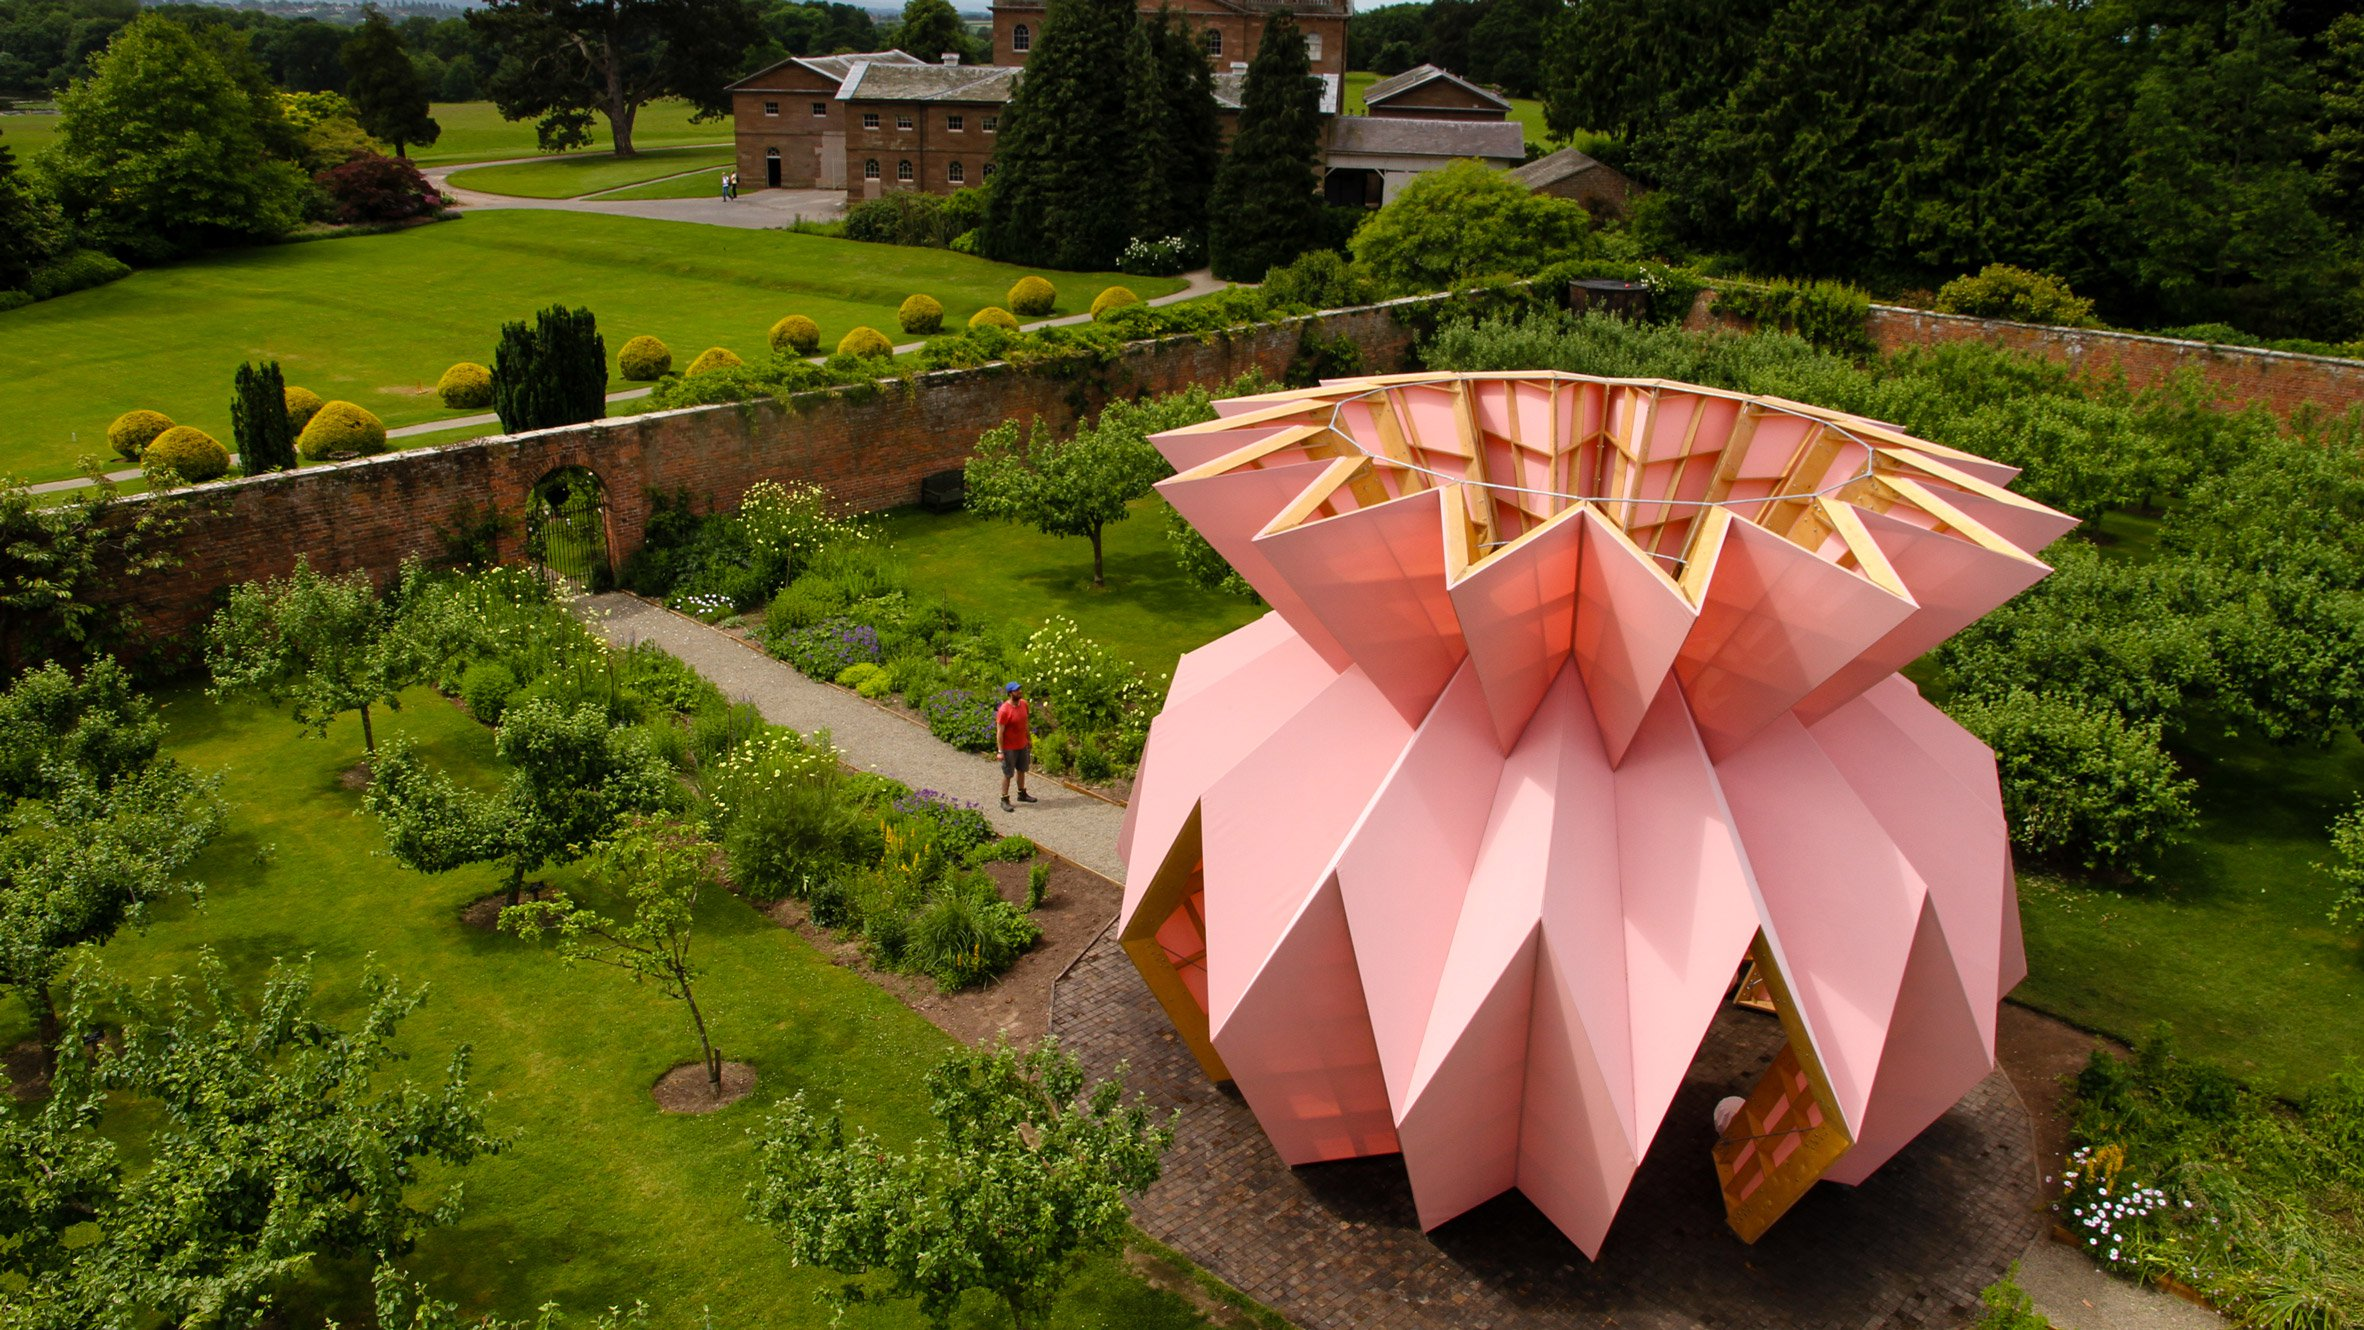 An open temporary structure with a wooden frame and faceted like a pineapple sits within a walled garden.